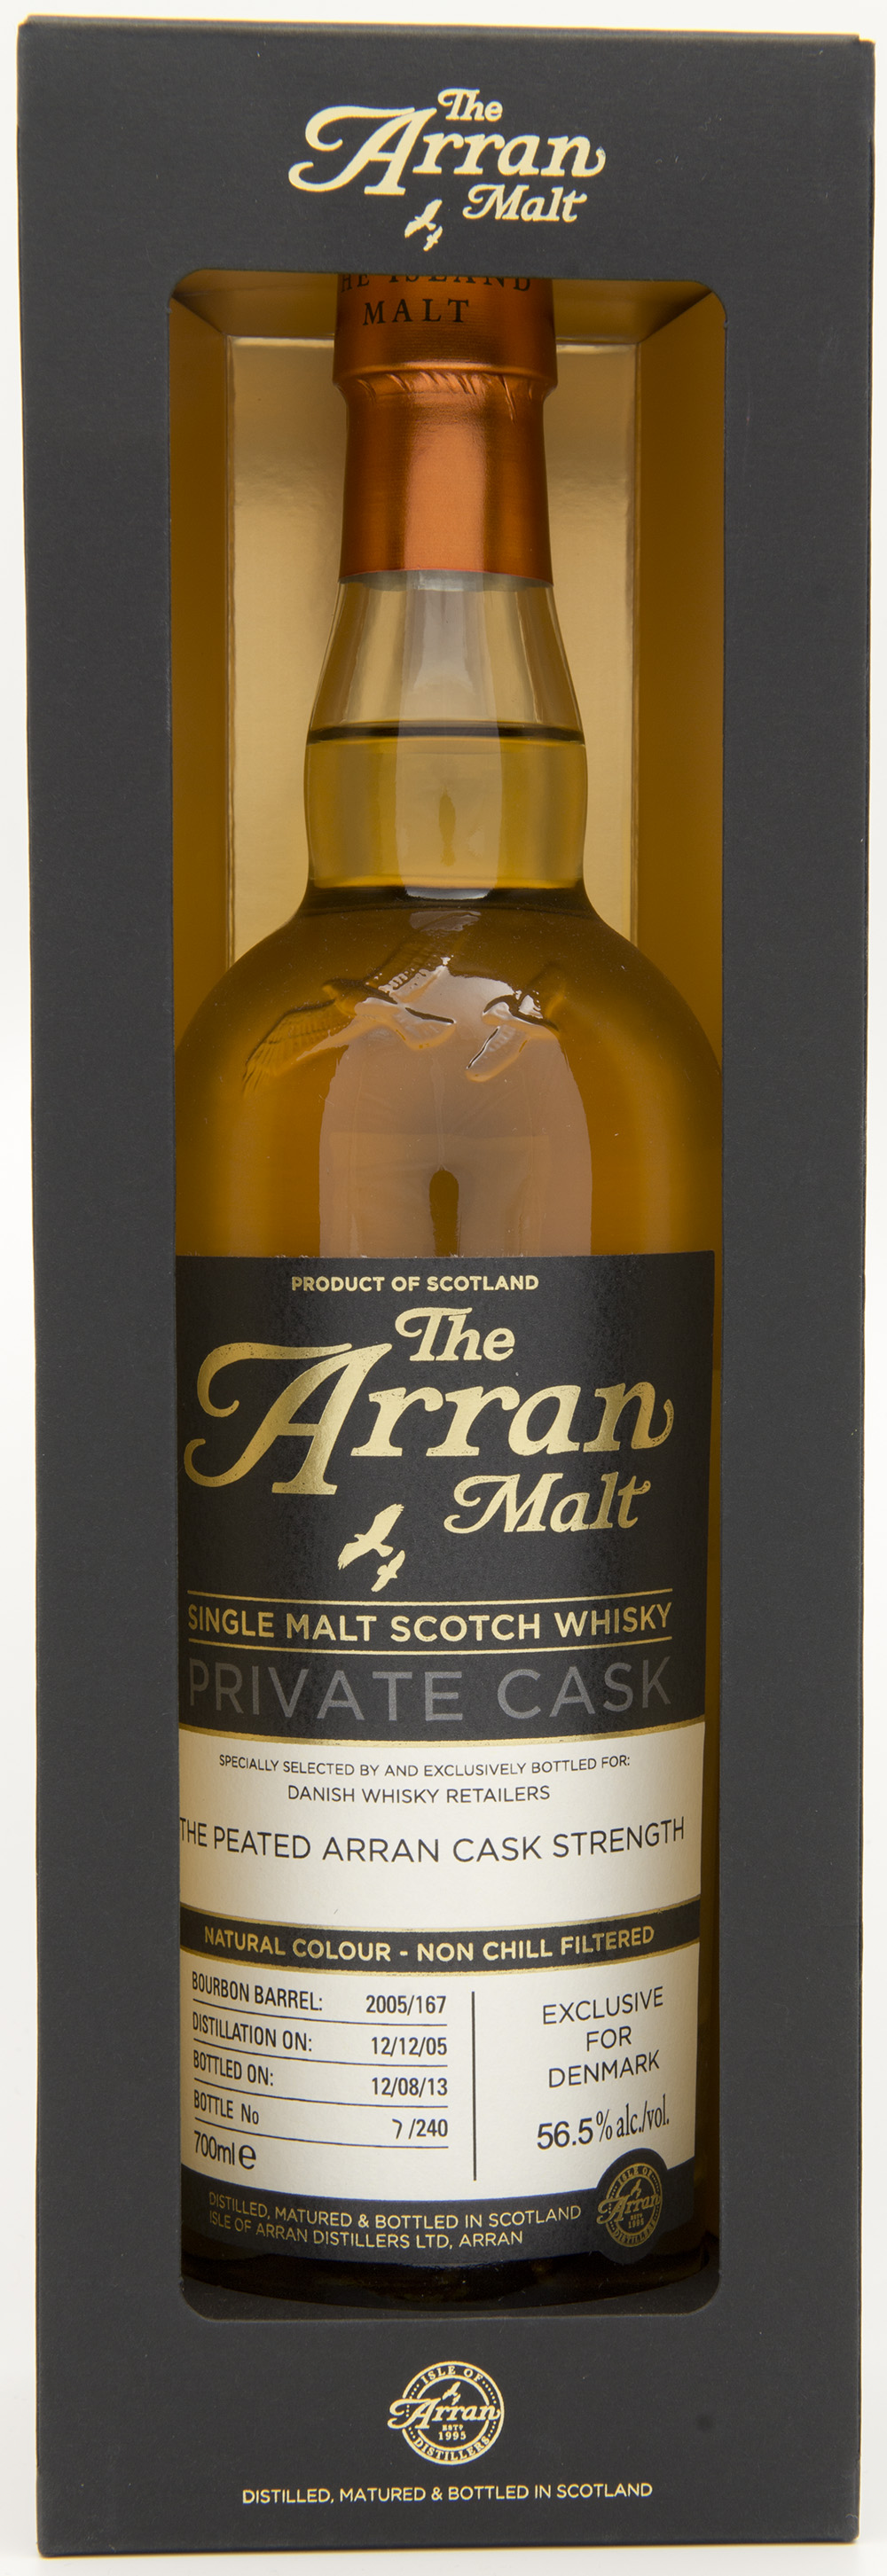 Billede: DSC_4821 - The Arran Malt - Private Cask - Danish Whisky Retailers The Peated Arran Cask Strength.jpg